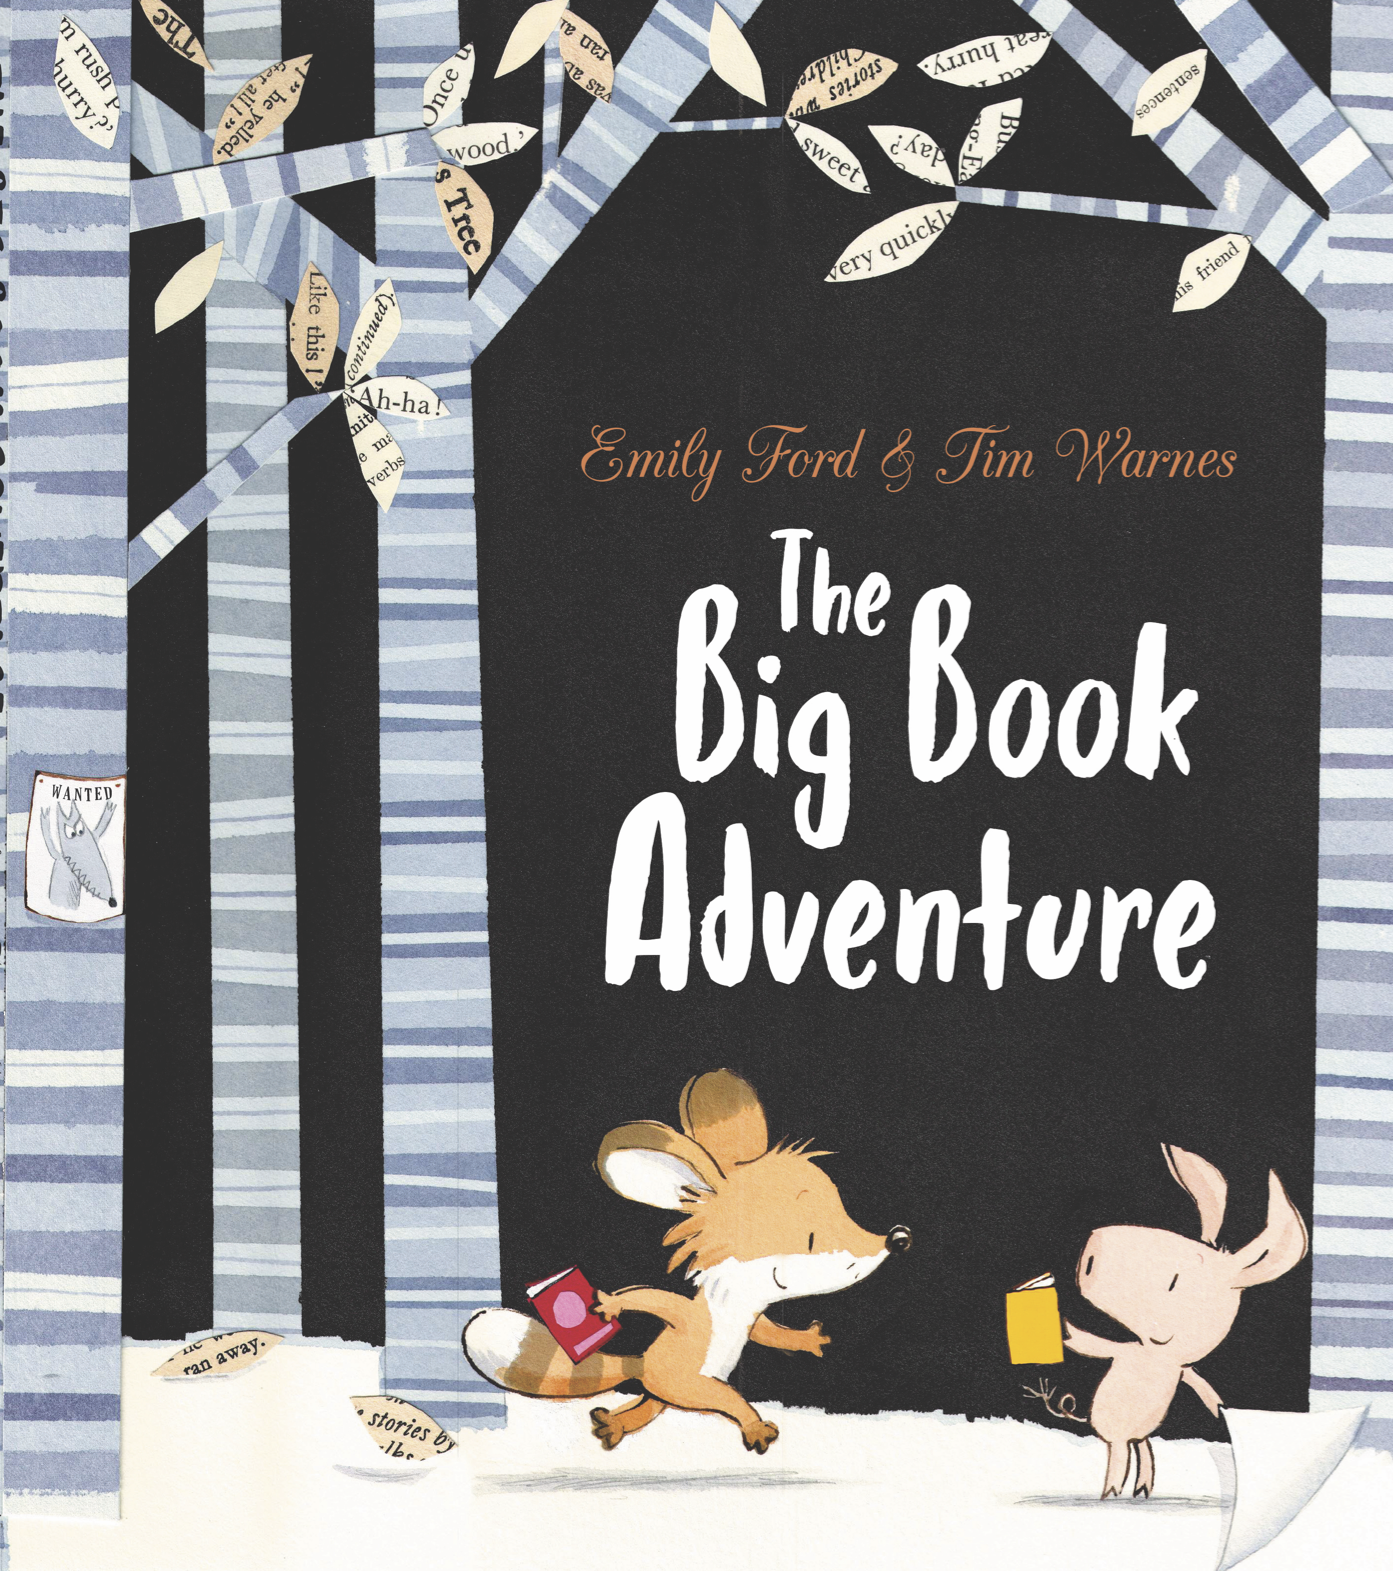 The Big Book Adventure  © 2018 by Tim Warnes